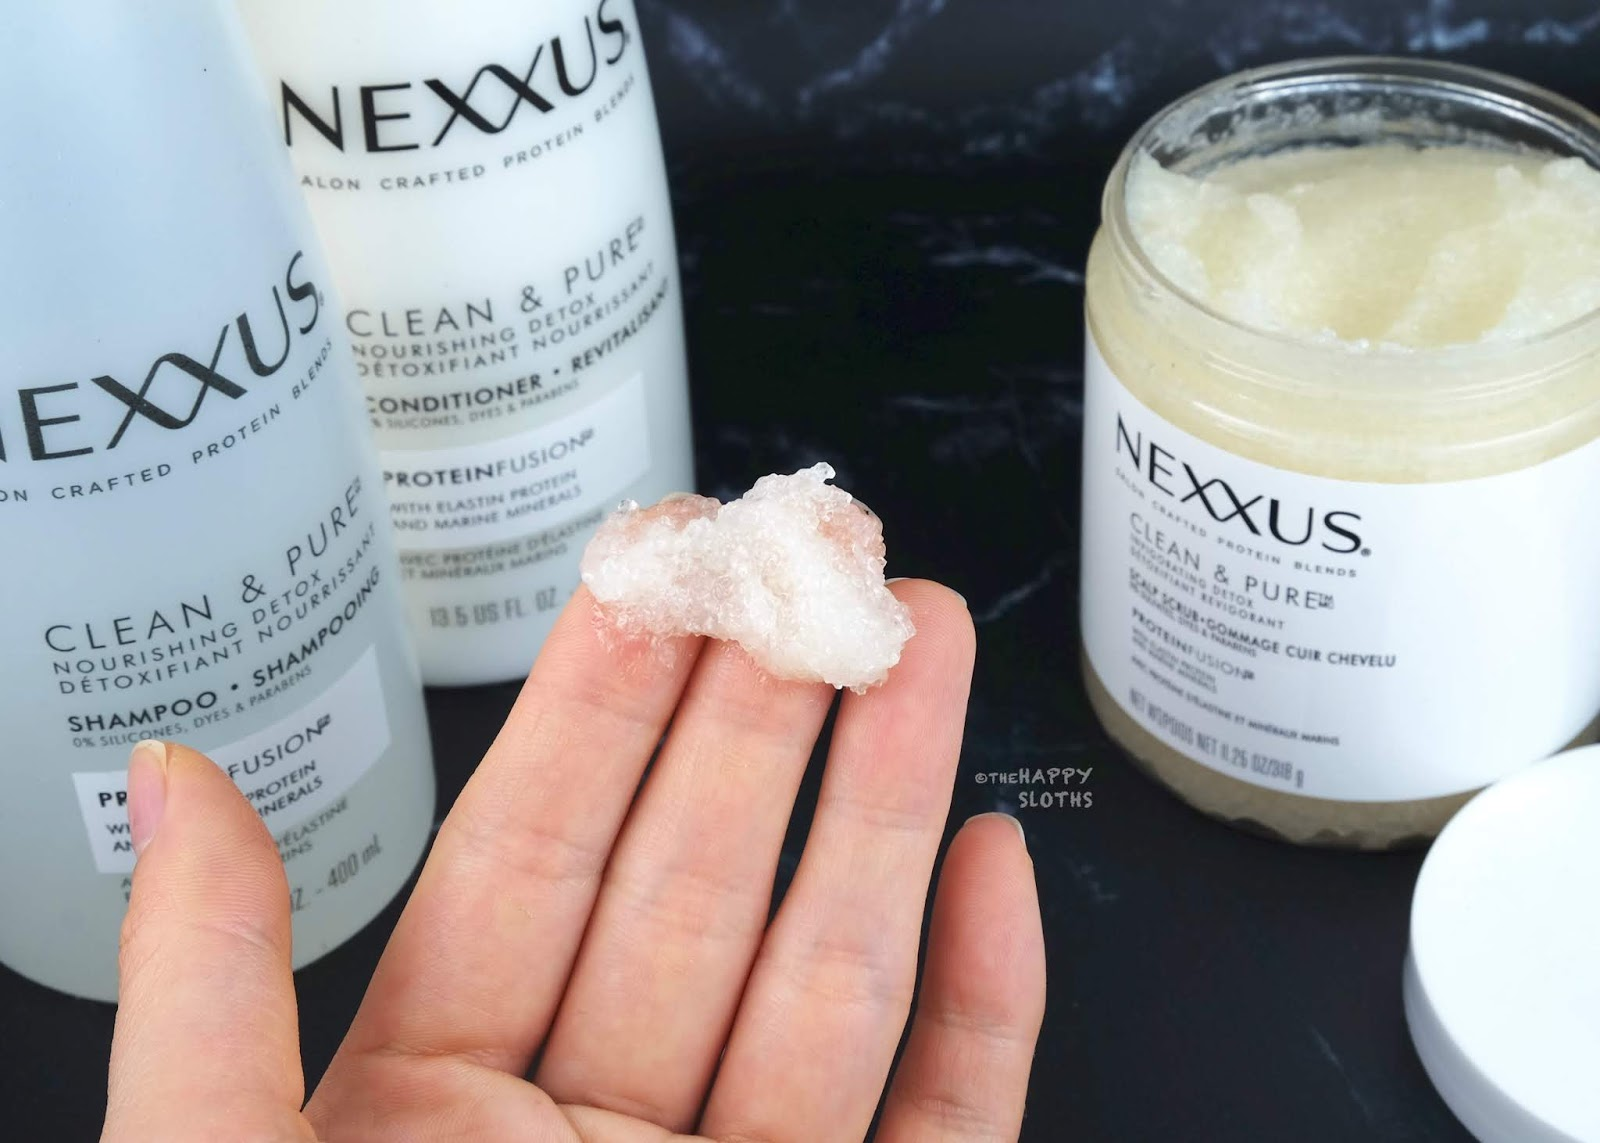 Nexxus | Clean & Pure Invigorating Detox Scalp Scrub: Review